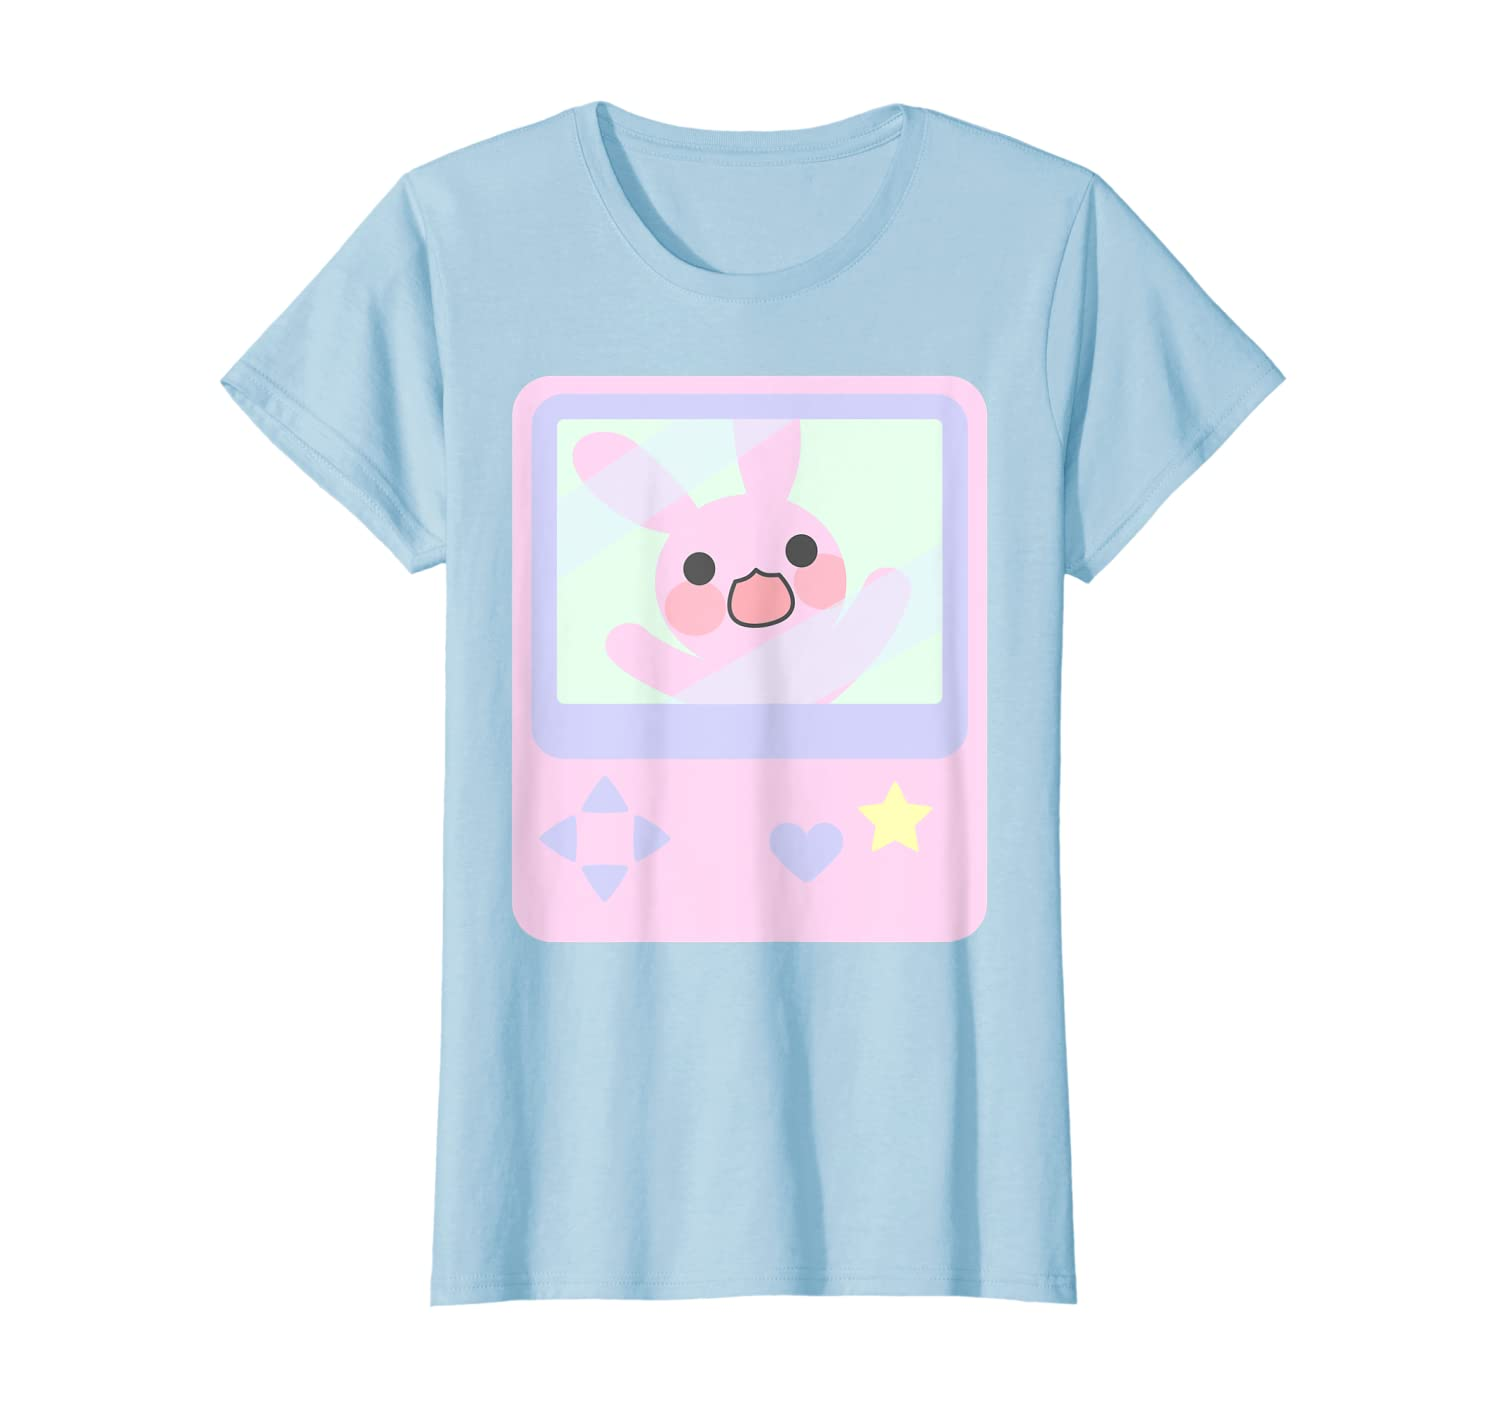 Amazon.com: Kawaii Gamer Bunny Rabbit Pastel Shirt: Clothing